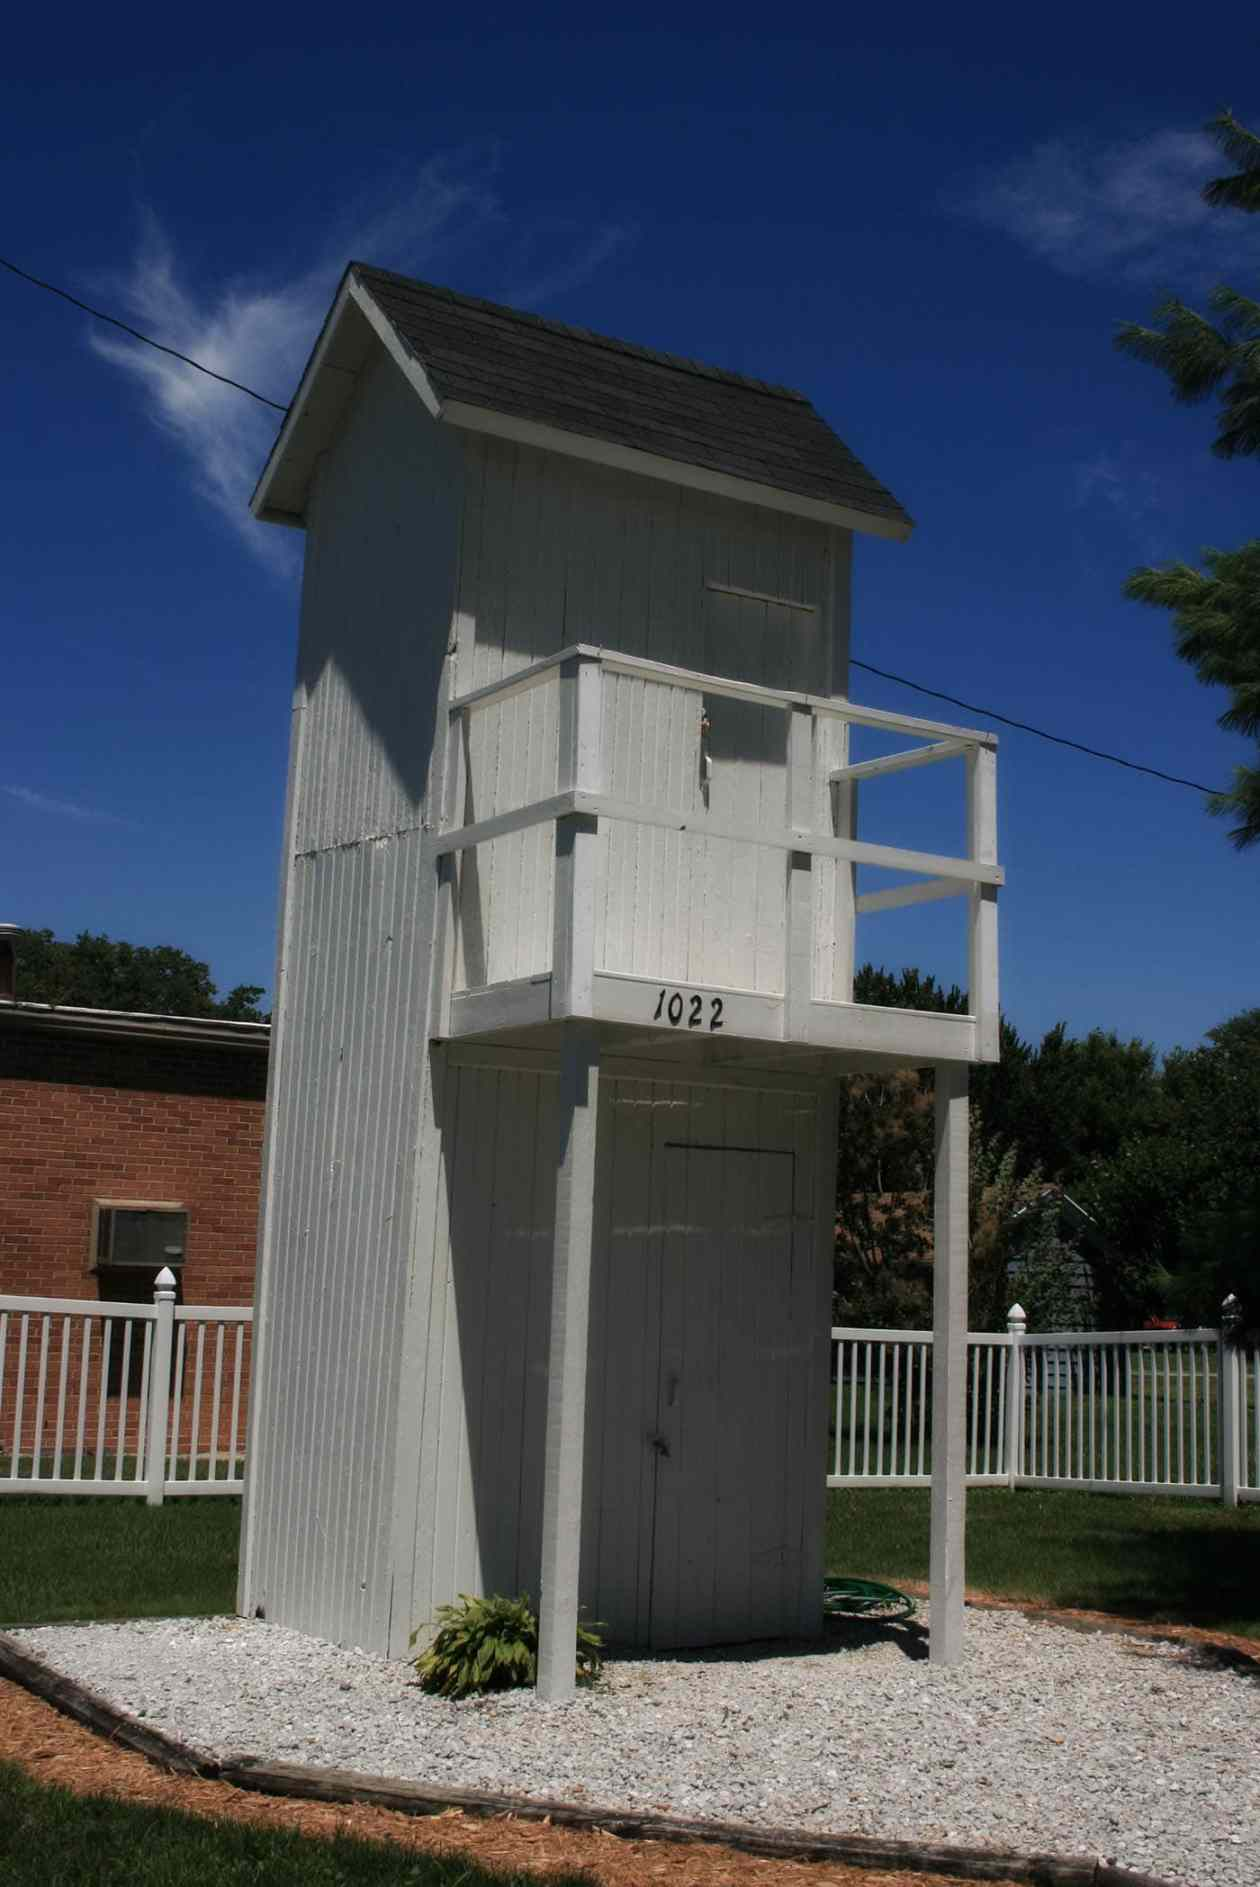 Two Story Outhouse In Gays Illinois Silly America